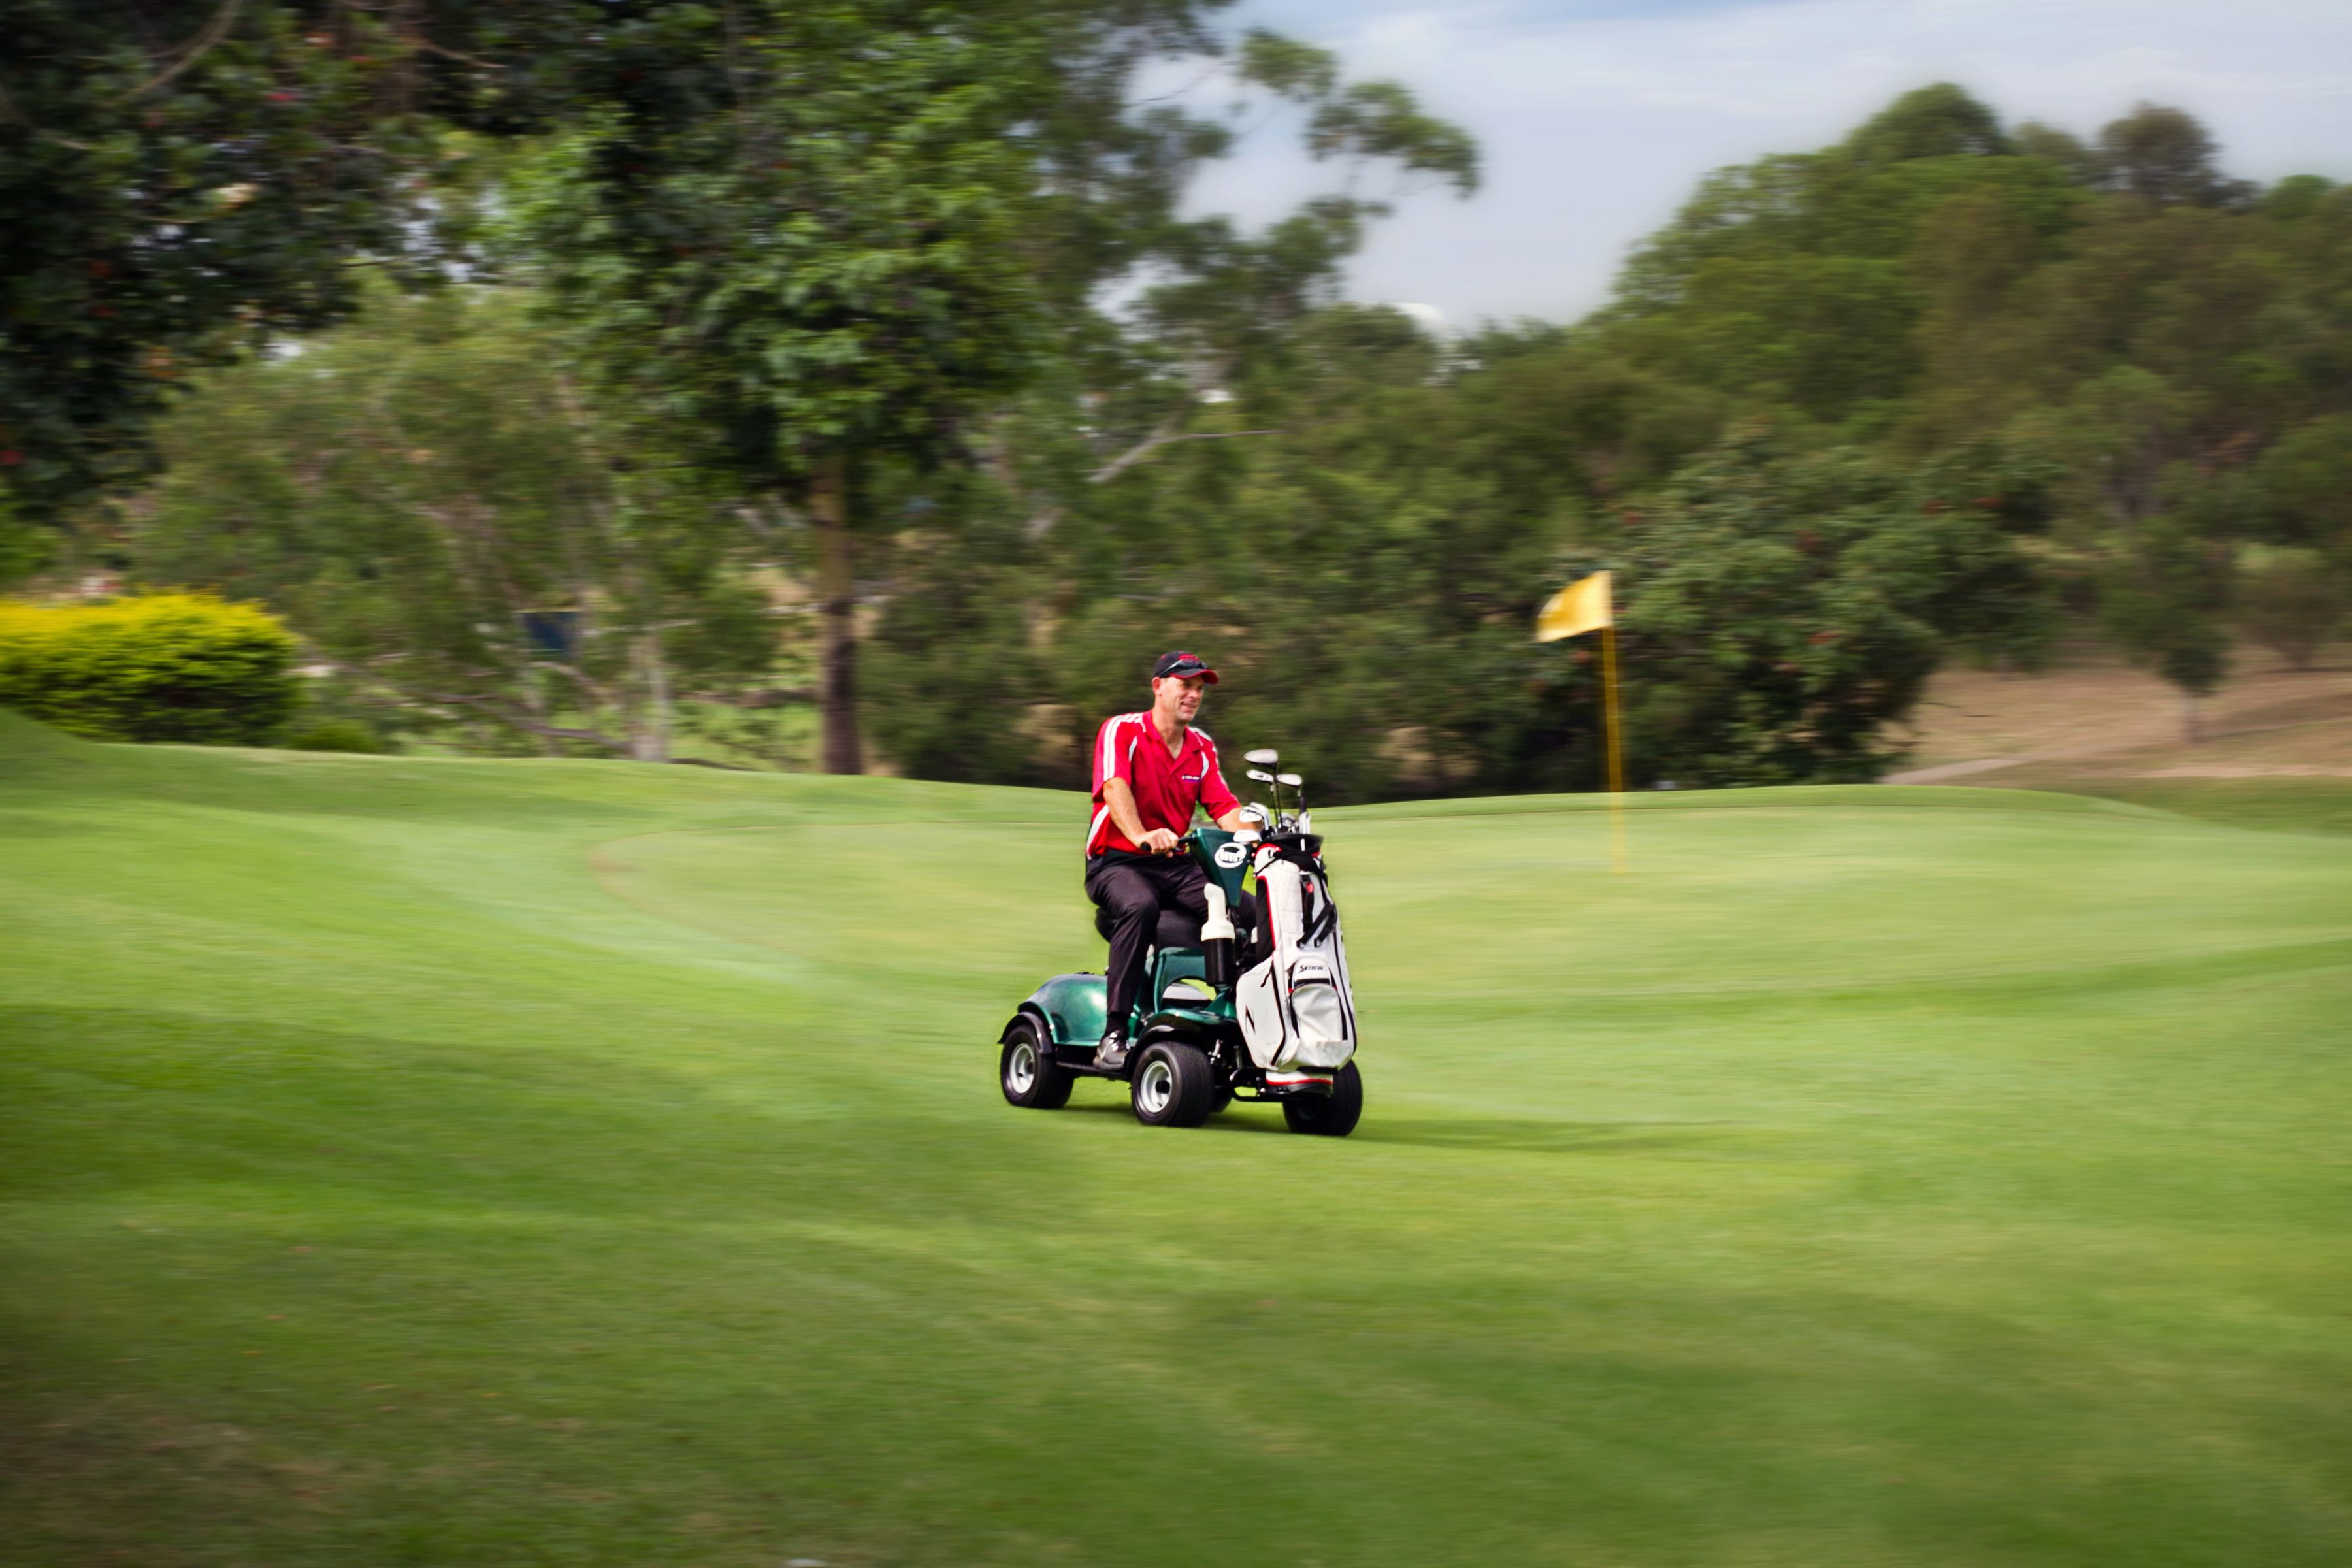 The Im4 Electric Single Seat Golf Buggy For Sale Is Designed For Speed And Agility The Chassis Is Base Electric Scooter For Kids Electric Golf Cart Golf Buggy